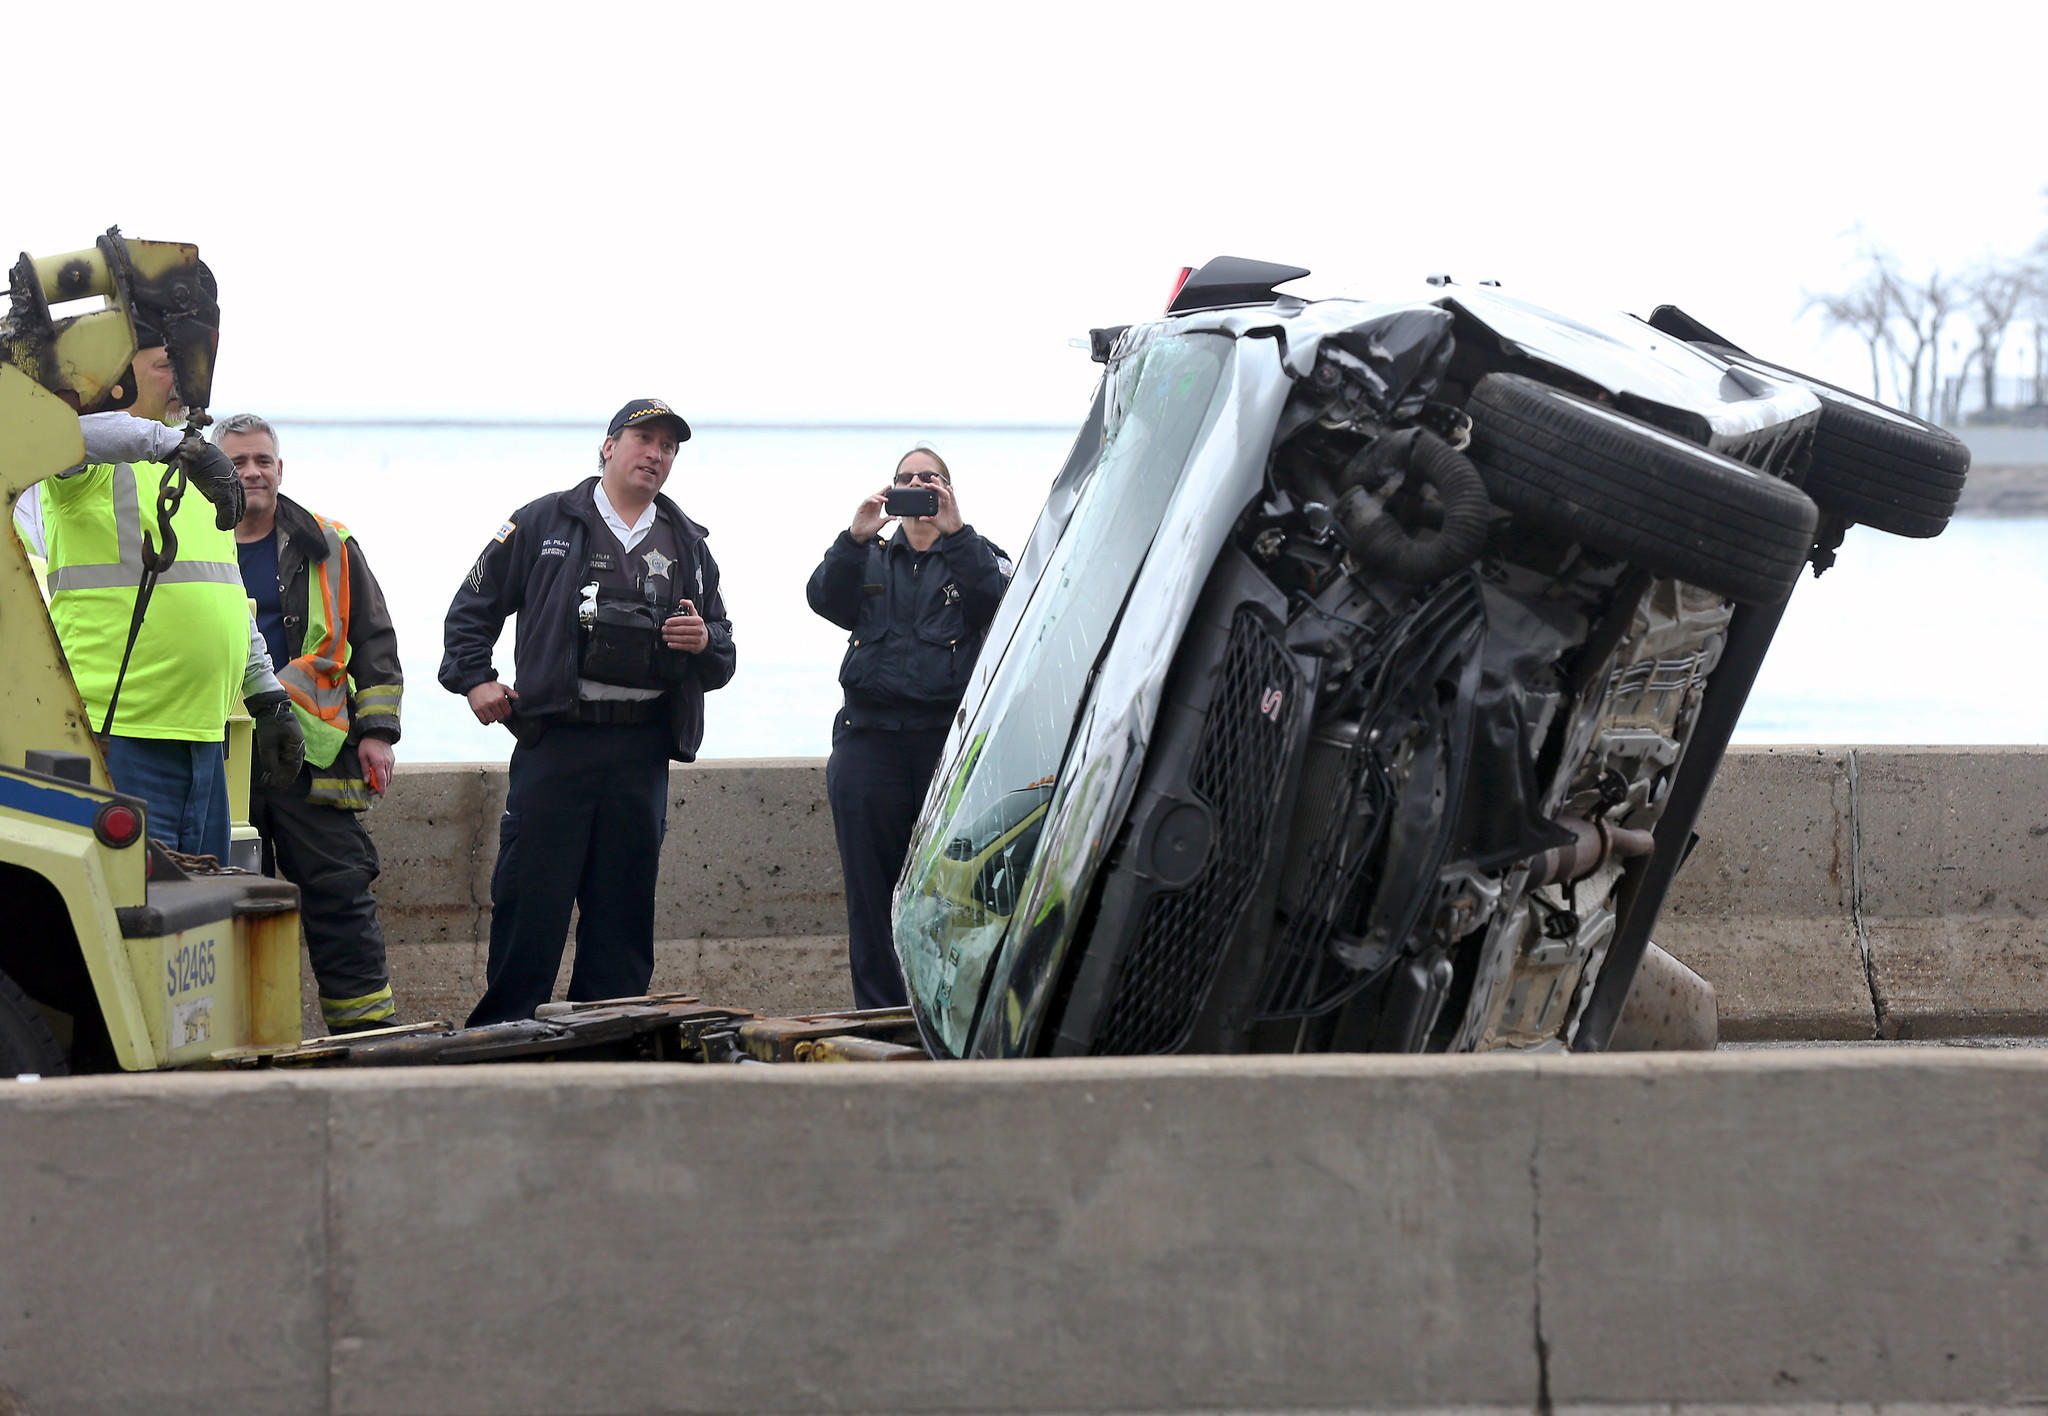 Police officers watch as a car is uprighted after a rollover crash on the northbound lanes of Lake Shore Drive.